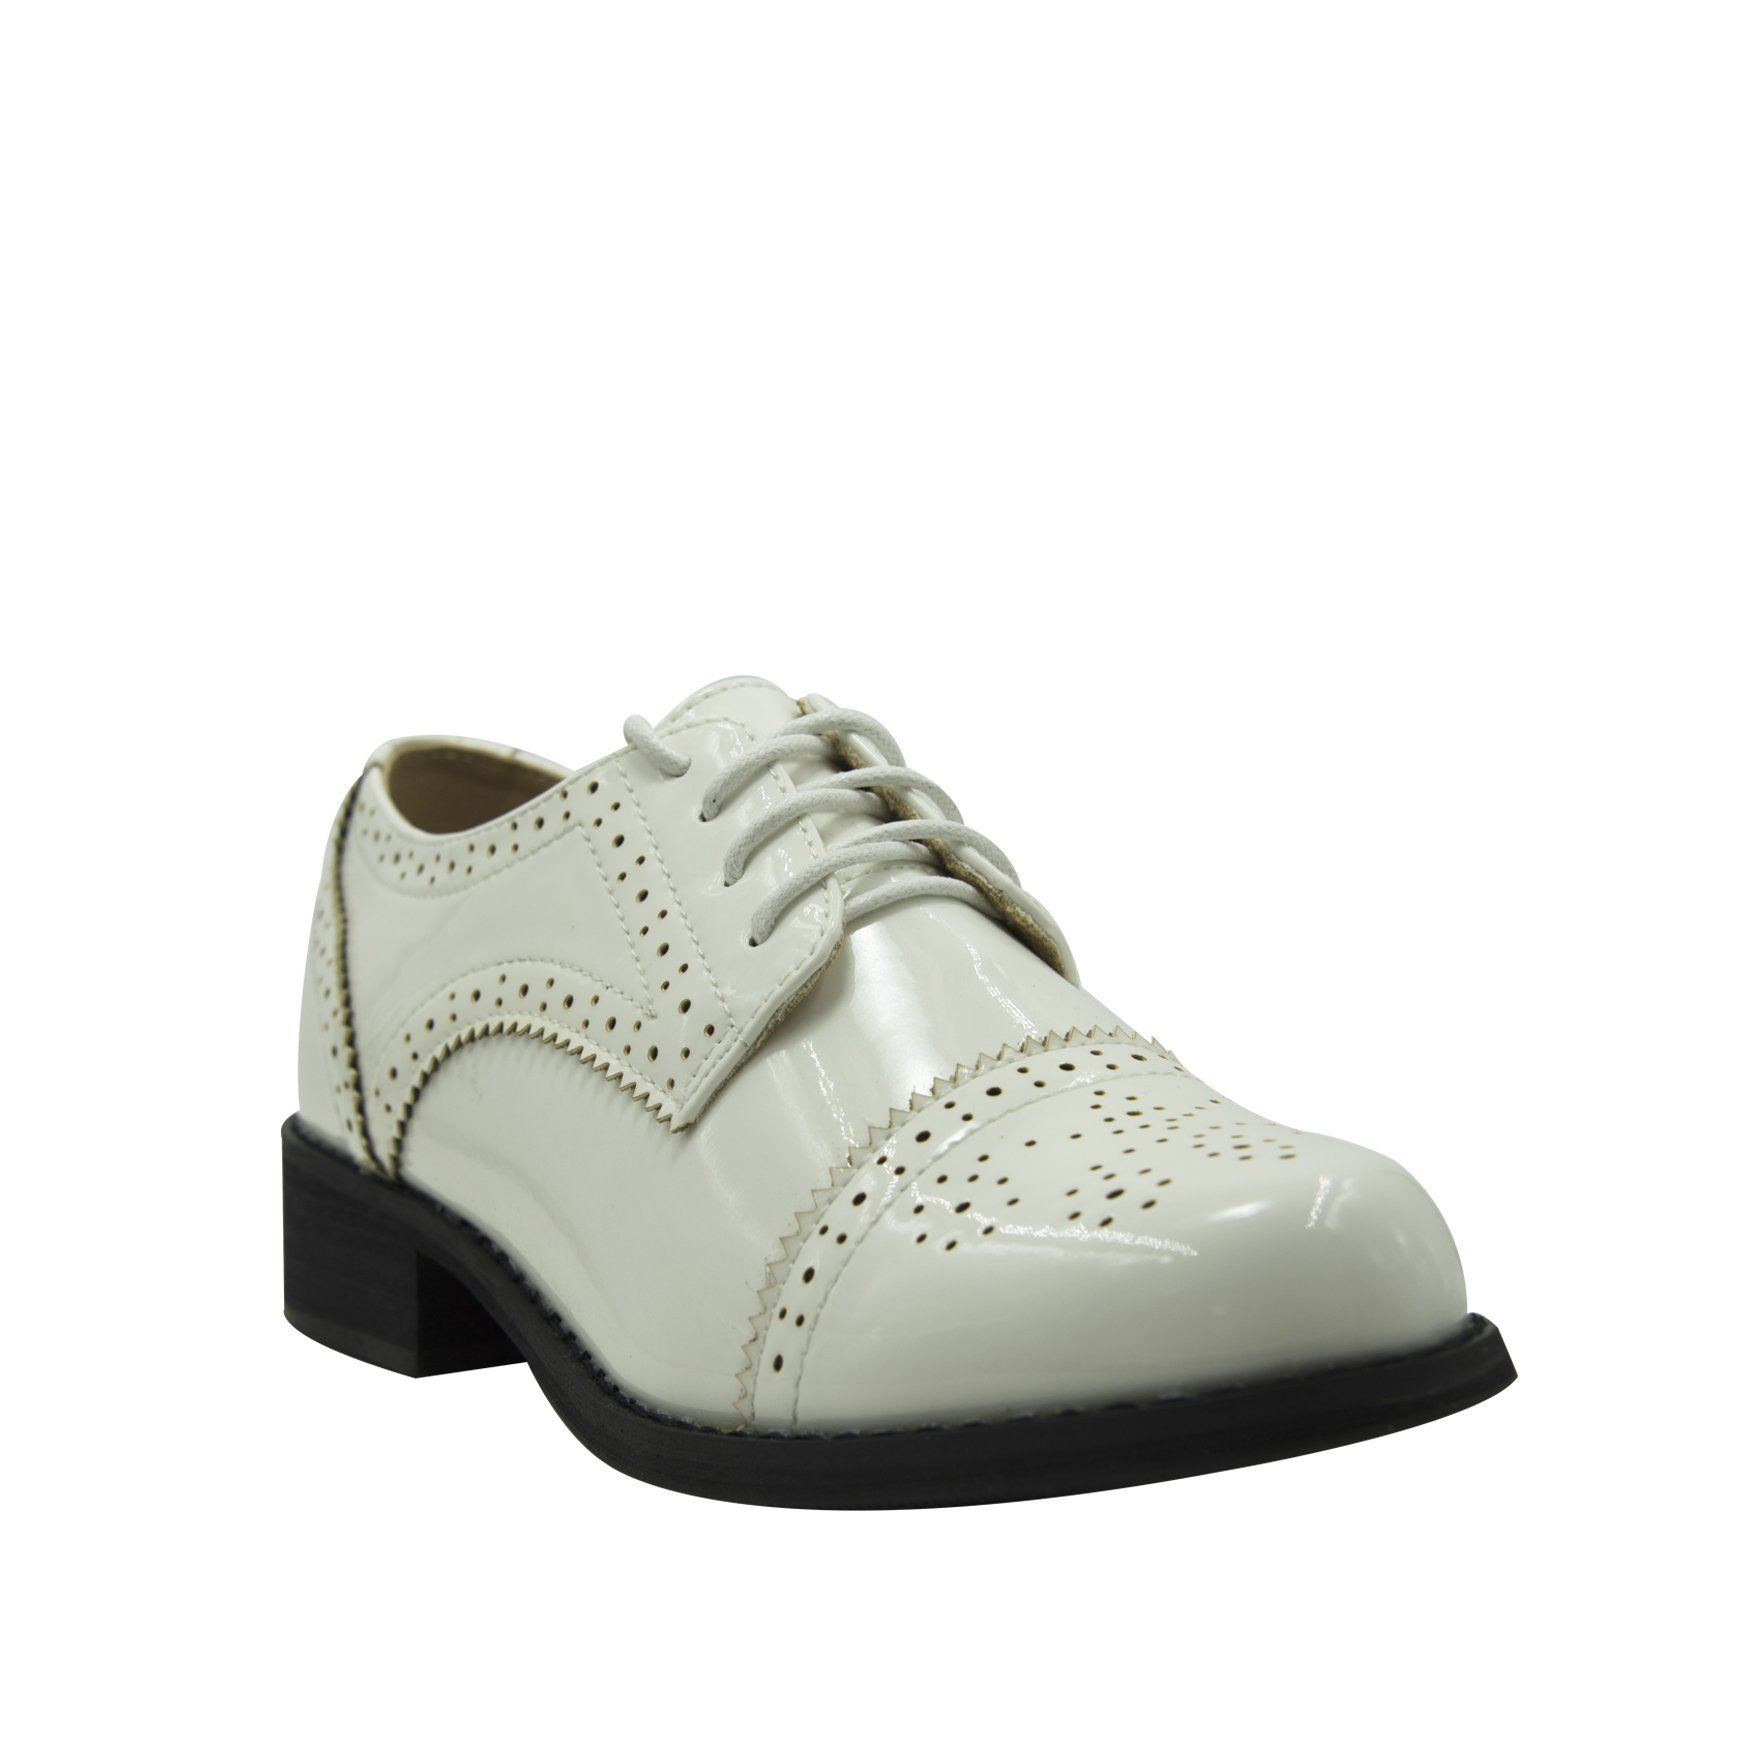 GottaBe Womens Perforated Lace-up White Leather Oxfords Shoes - Oxfords Shoes Women - Vintage Oxford Shoes(9) by GottaBe (Image #3)